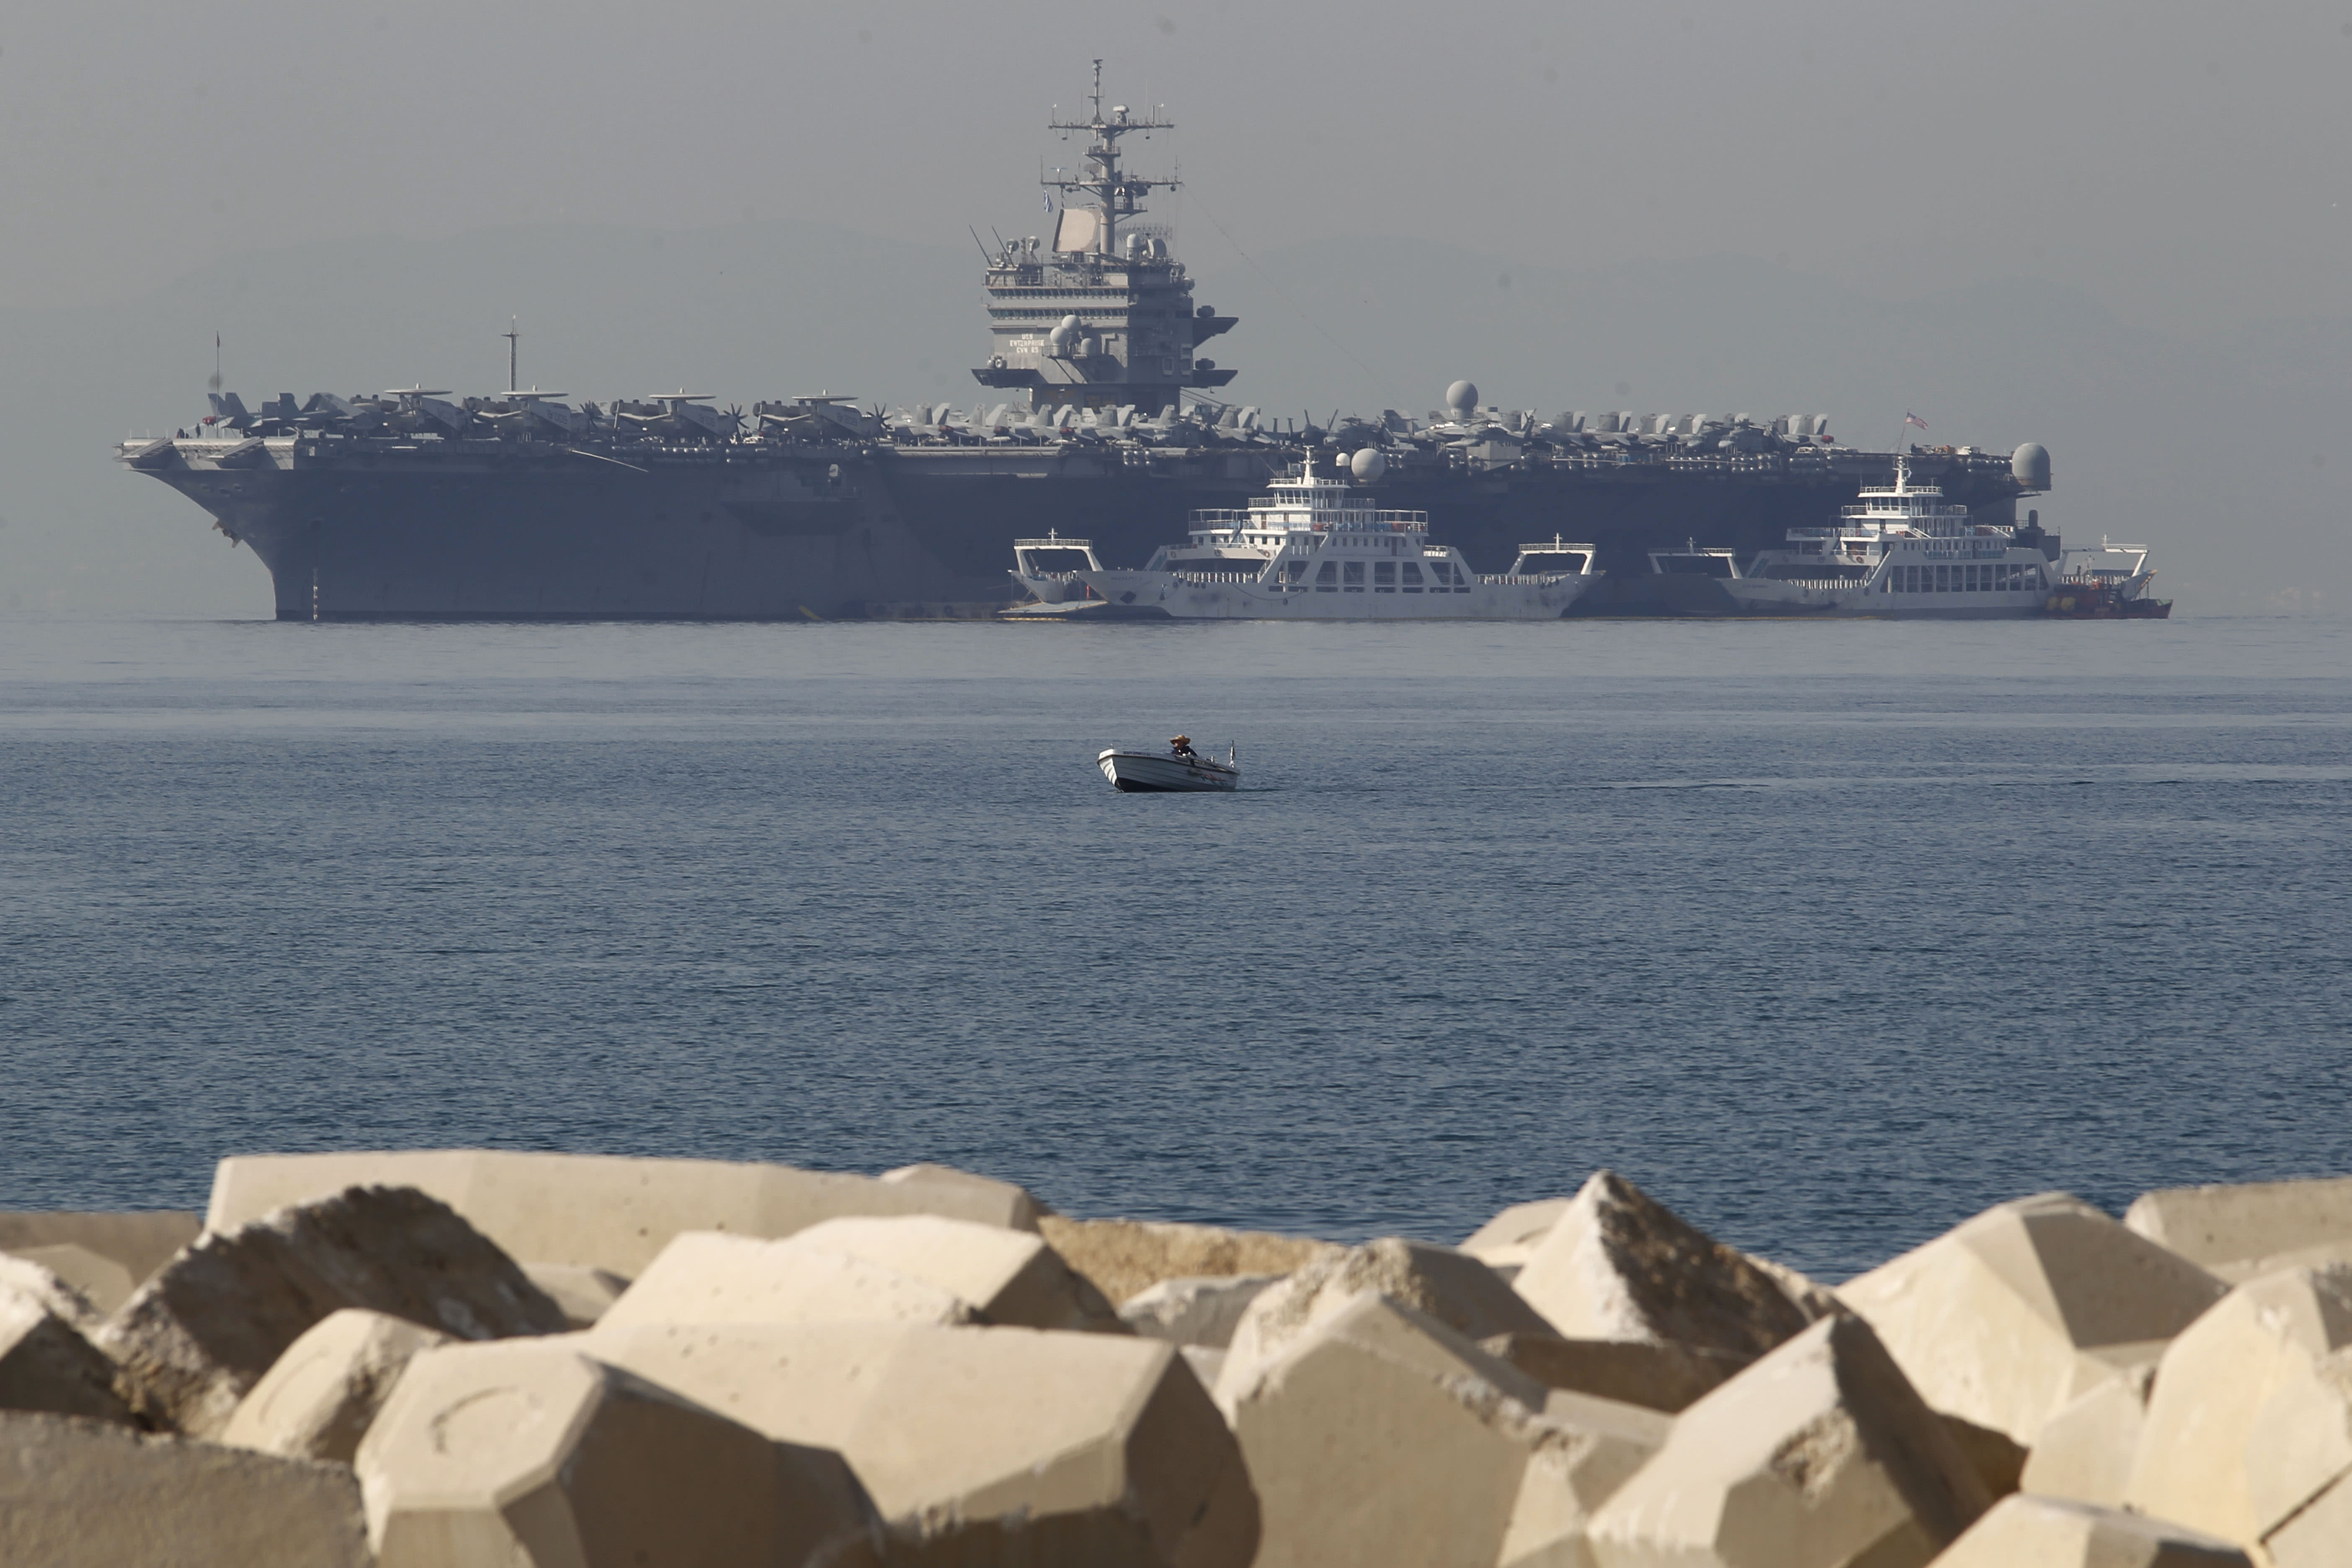 FILE - In this Thursday, March 29, 2012 file photo, a small boat pass in front of the aircraft carrier USS Enterprise is seen anchored of the coast of Faliro, near Athens. The U.S. Navy said Monday, April 9, 2012 that it has deployed a second aircraft carrier to the Persian Gulf region amid rising tensions with Iran over its nuclear program. The deployment of the nuclear-powered USS Enterprise along the Abraham Lincoln carrier strike group marks only the fourth time in the past decade that the Navy has had two aircraft carriers operating at the same time in the Persian Gulf and the Arabian Sea, said Cmdr. Amy Derrick-Frost of the Bahrain-based 5th Fleet. (AP Photo/Petros Giannakouris, File)